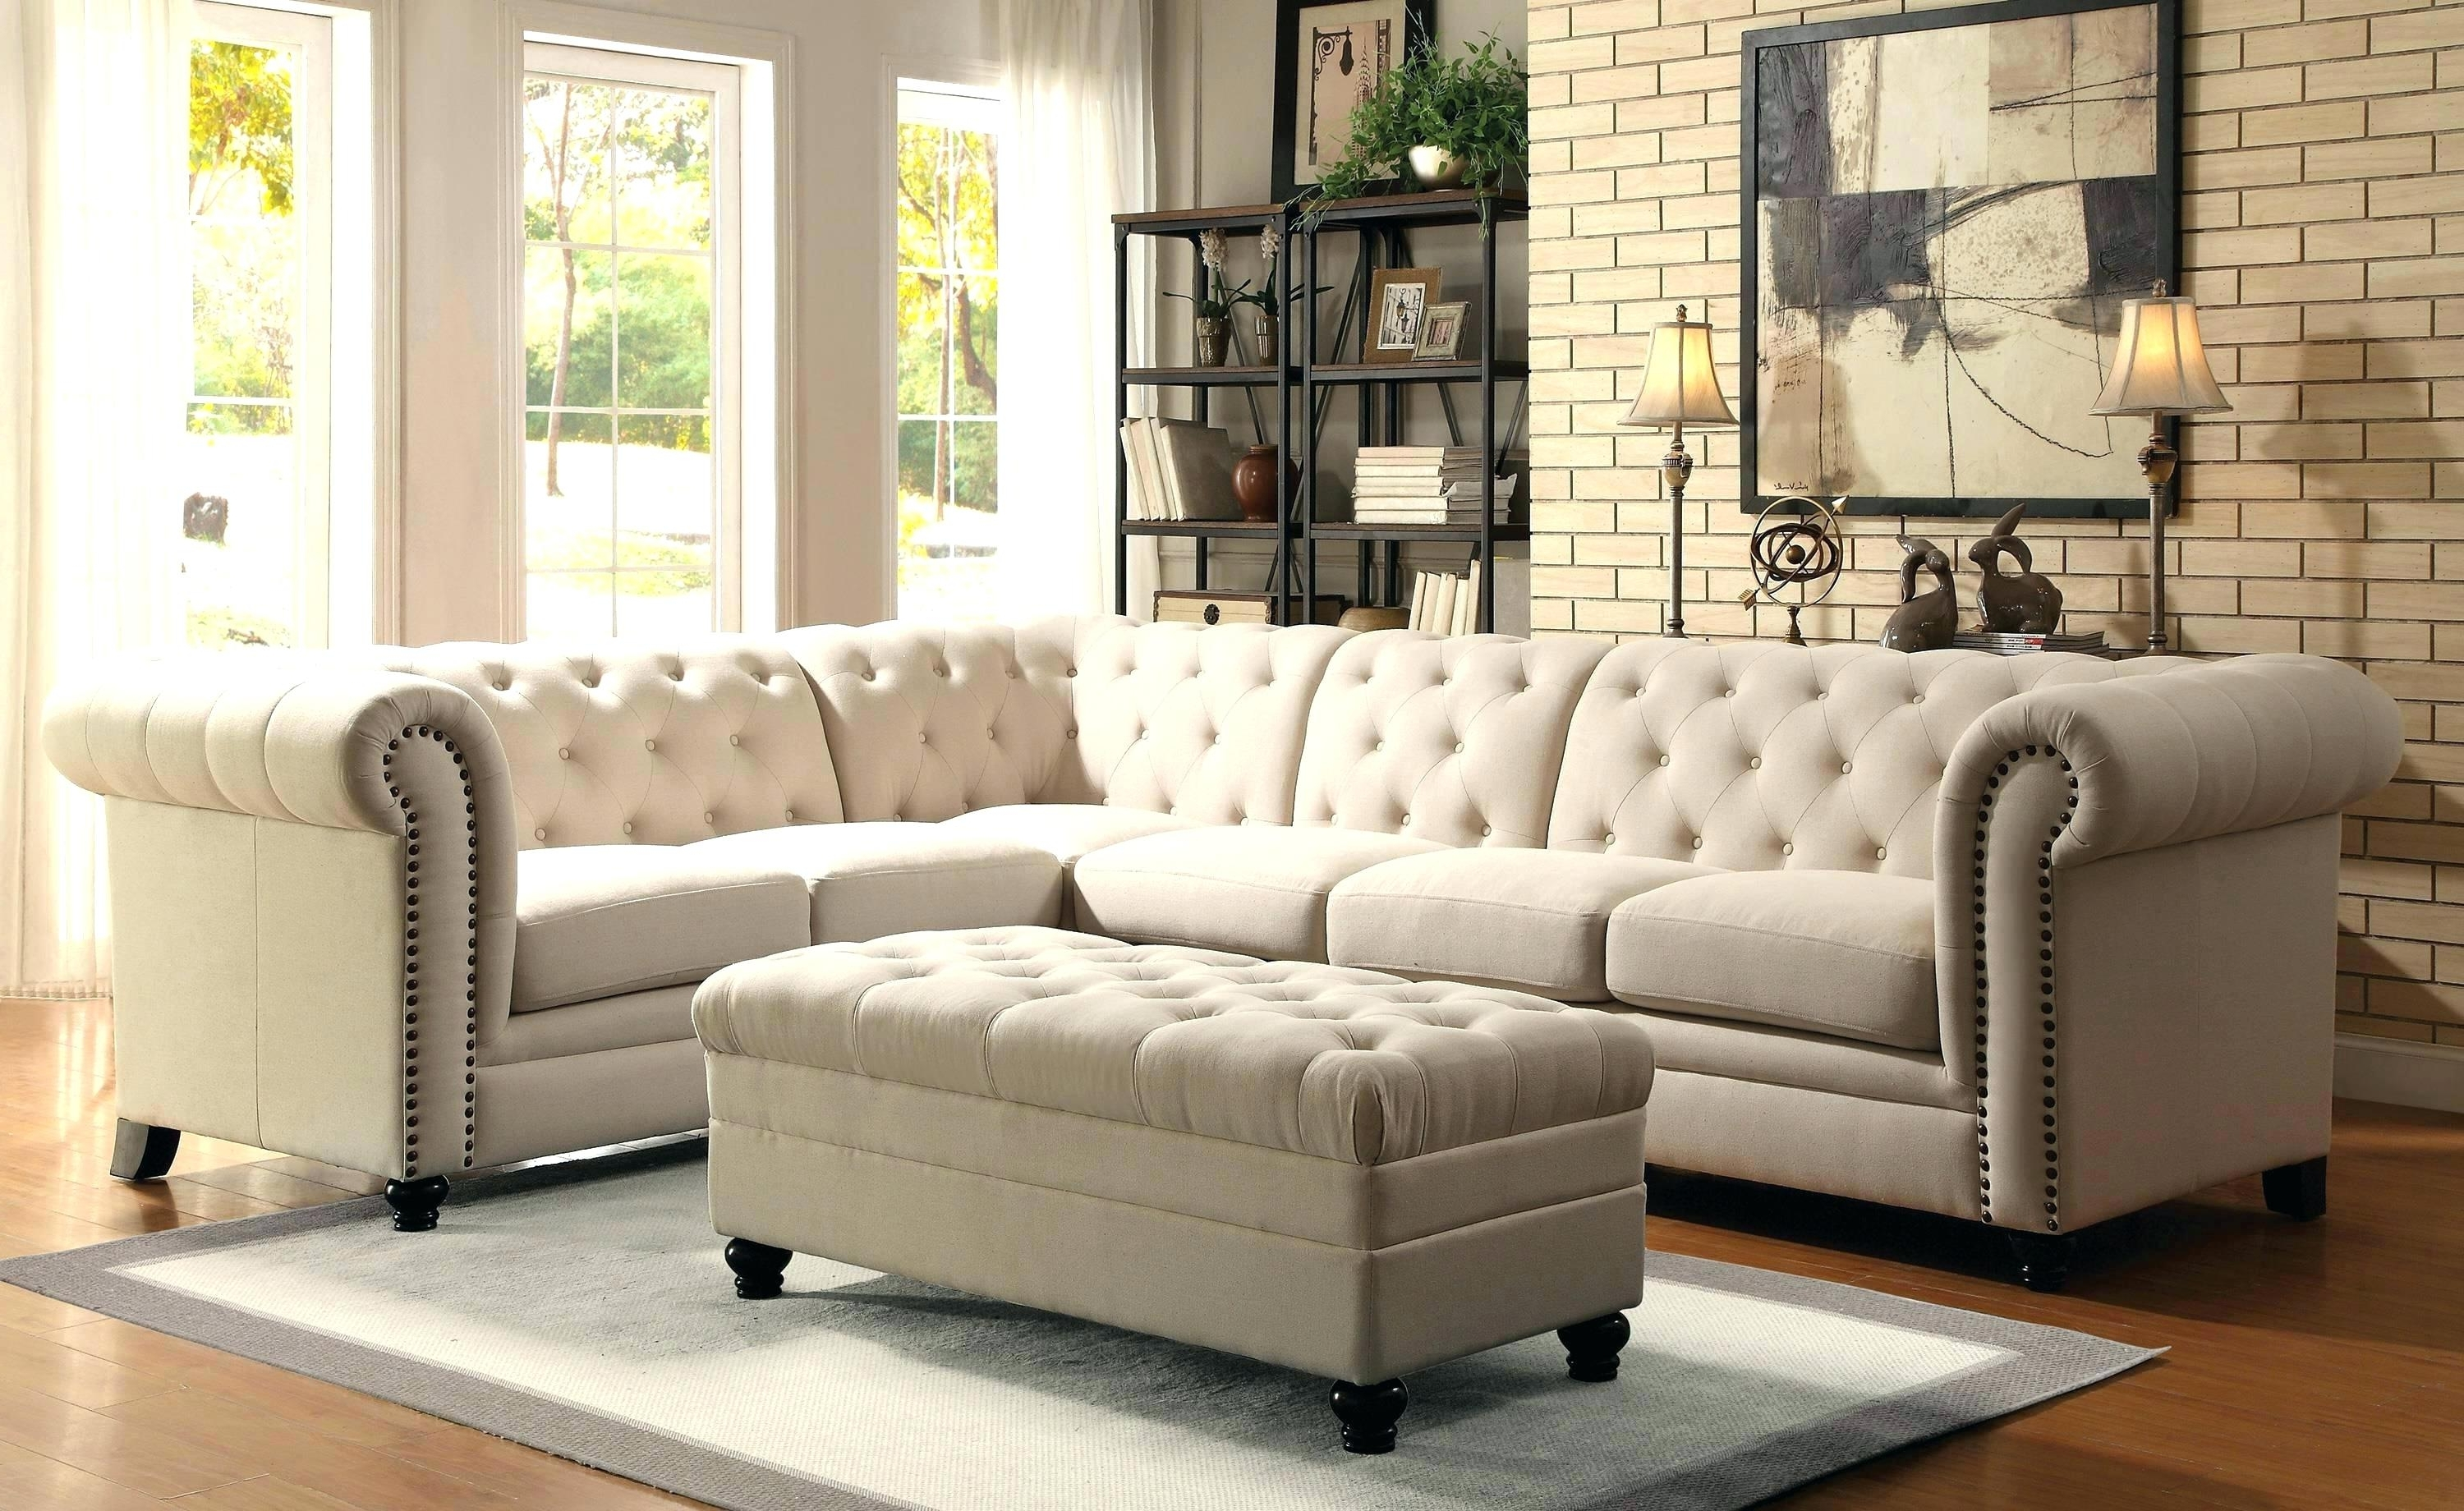 Dallas Sectional Sofas In Fashionable Sectional Sofas Dallas Leather Sofa Tx Area – Province De Liege (View 15 of 15)